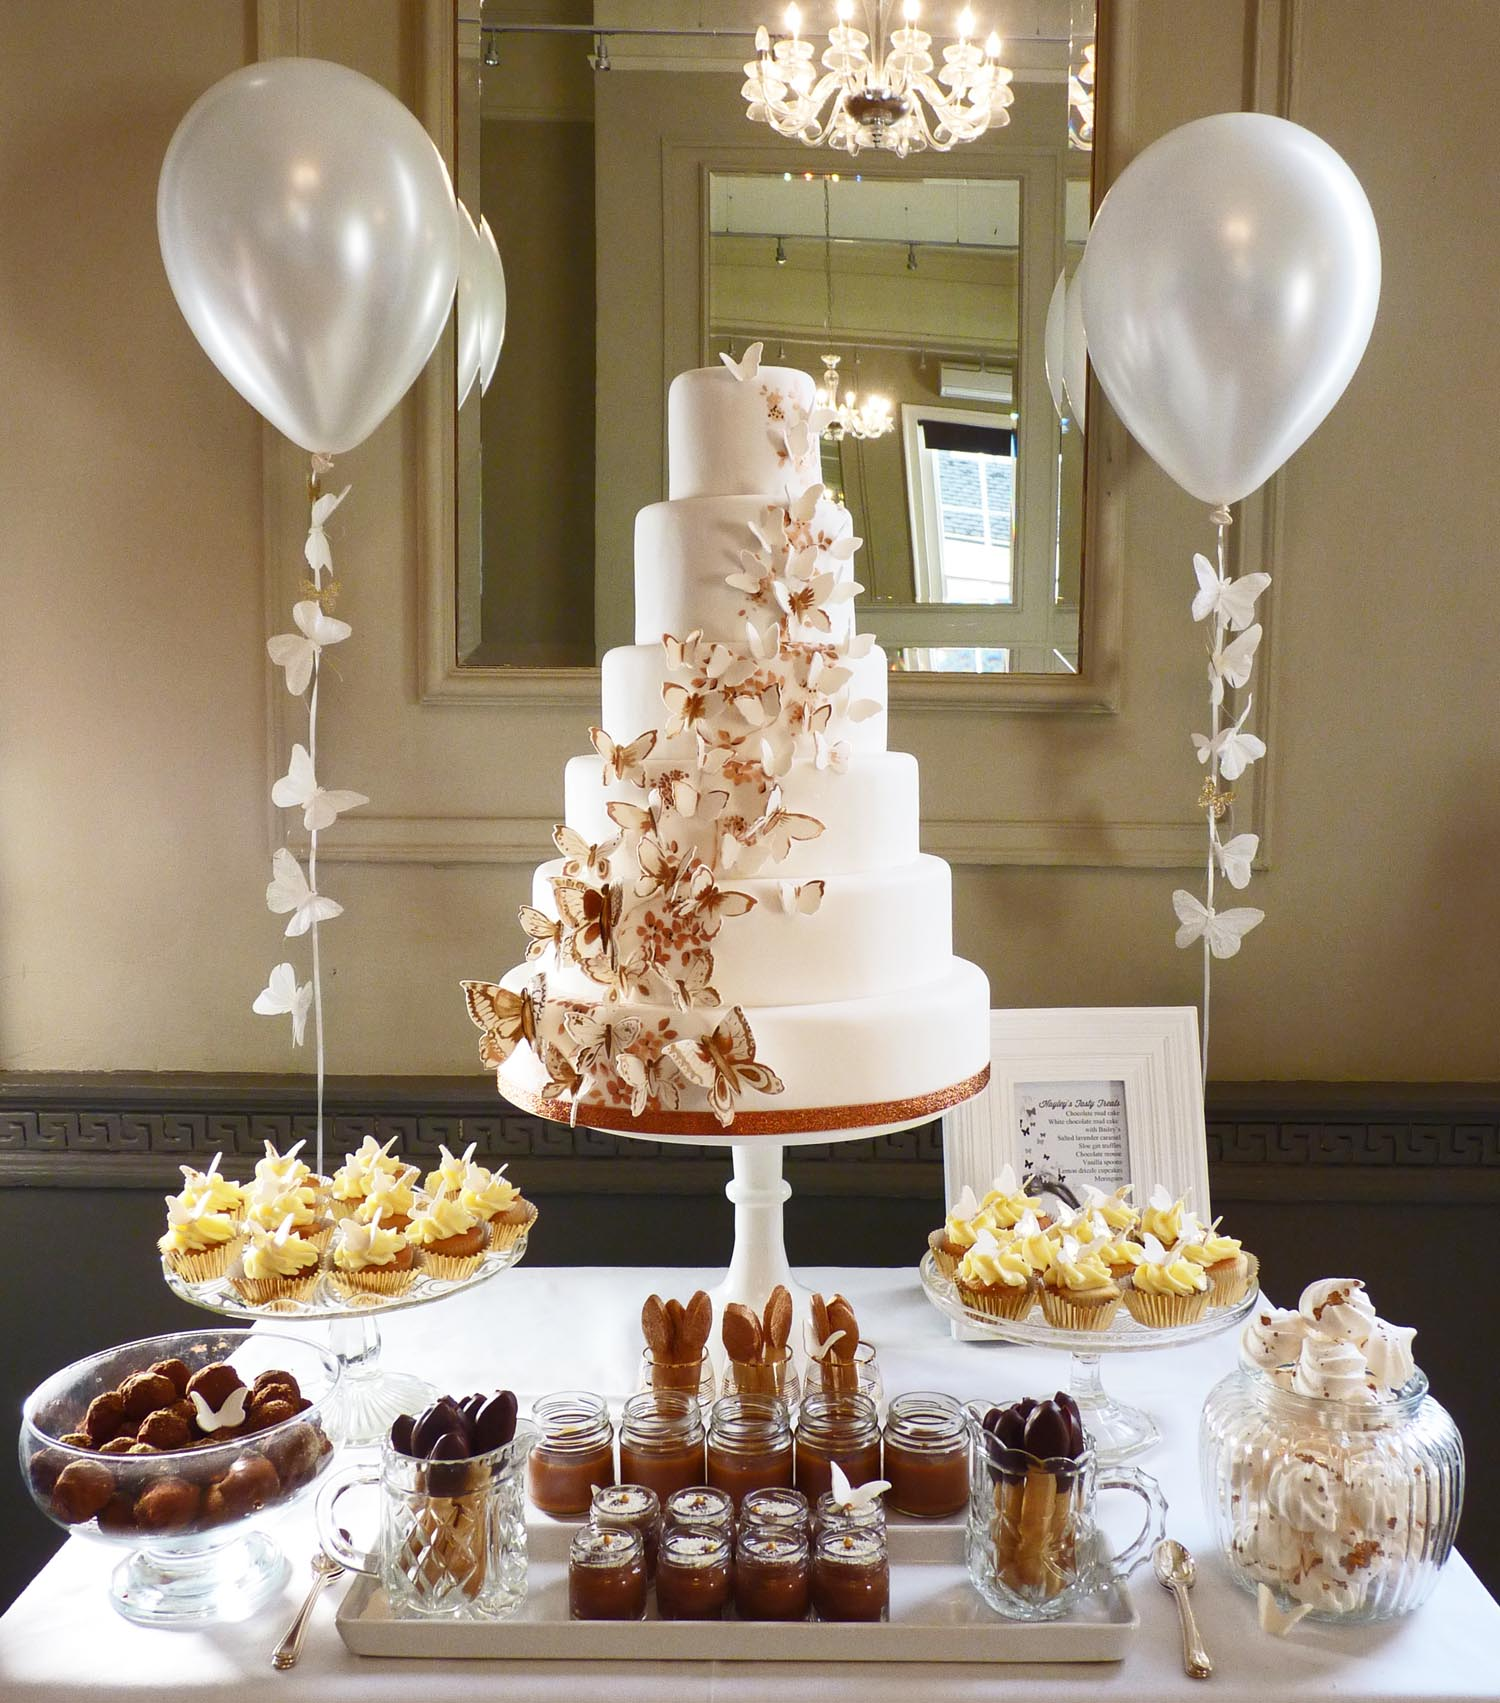 Dessert Table Wedding Cake: Dessert Table